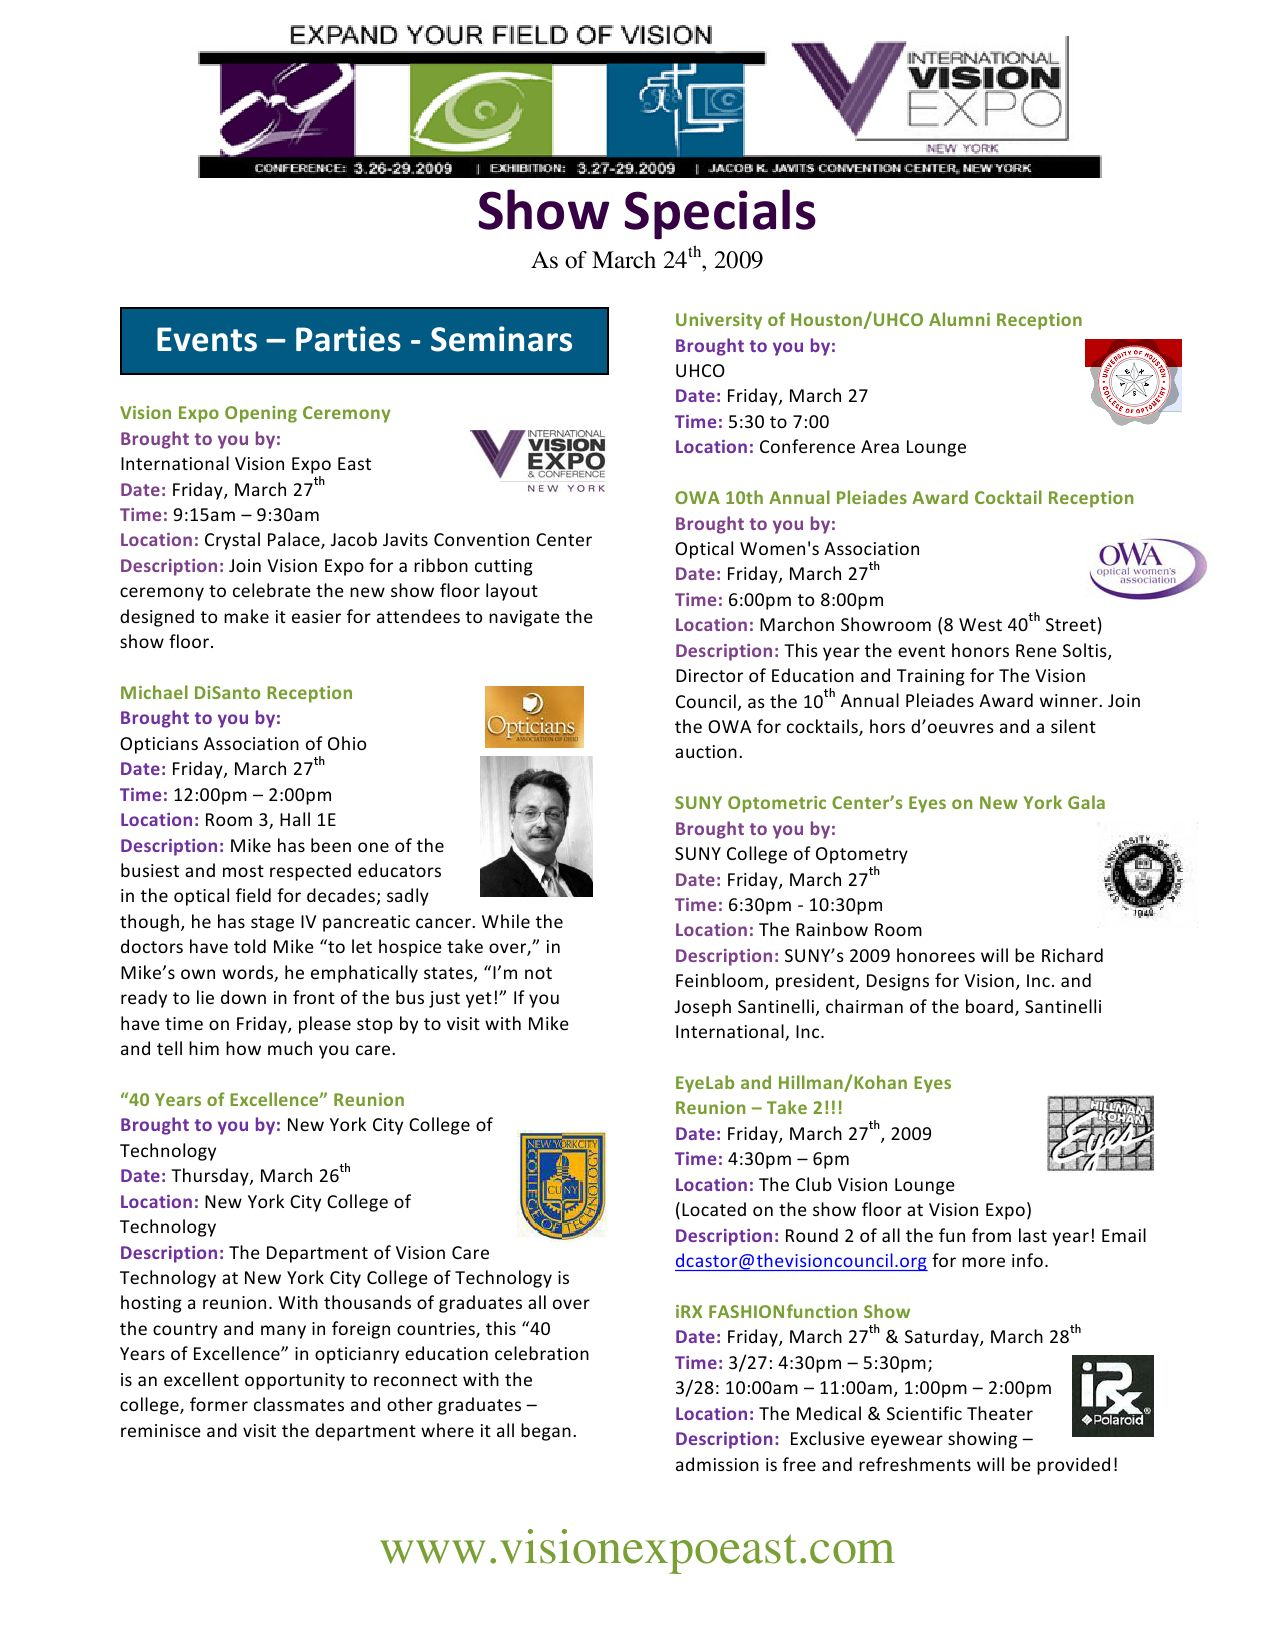 Vision East Show Specials v11 by Reed Exhibitions - issuu